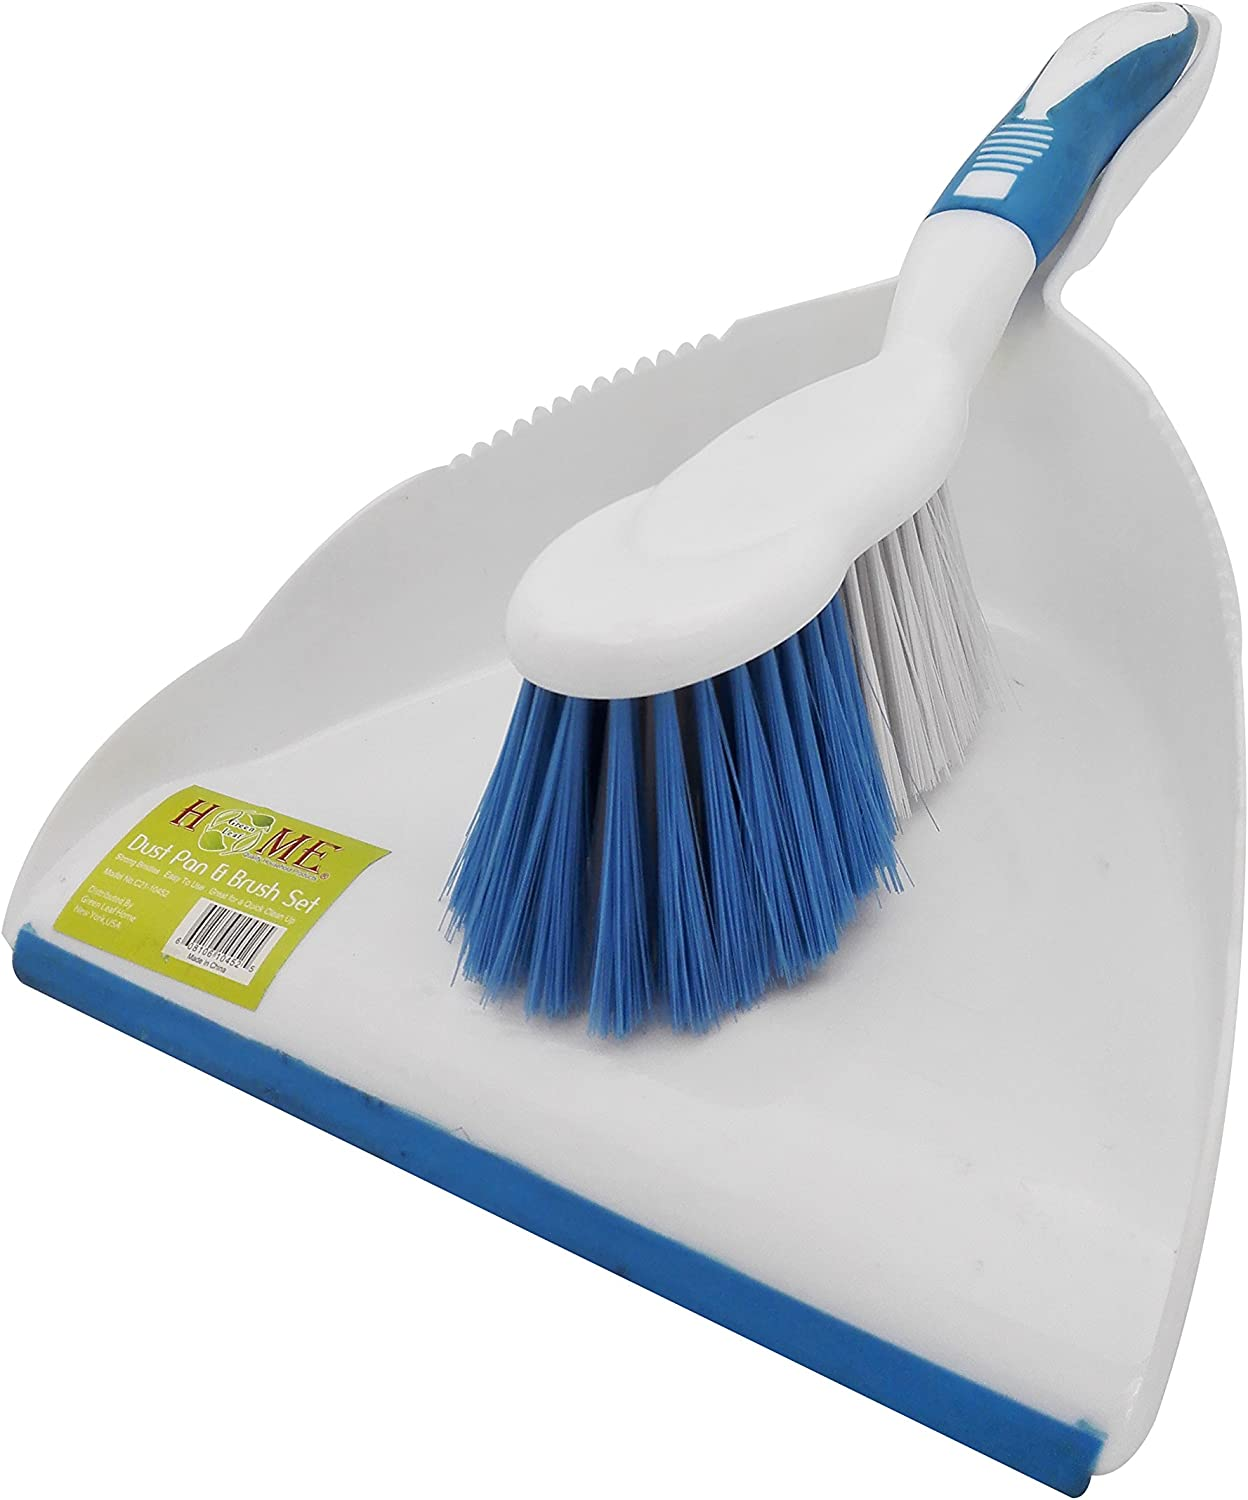 UNIWARE C21-10452 Dust pan and Broom Set Max 79% OFF x trust 9 White in 13 Sturdy